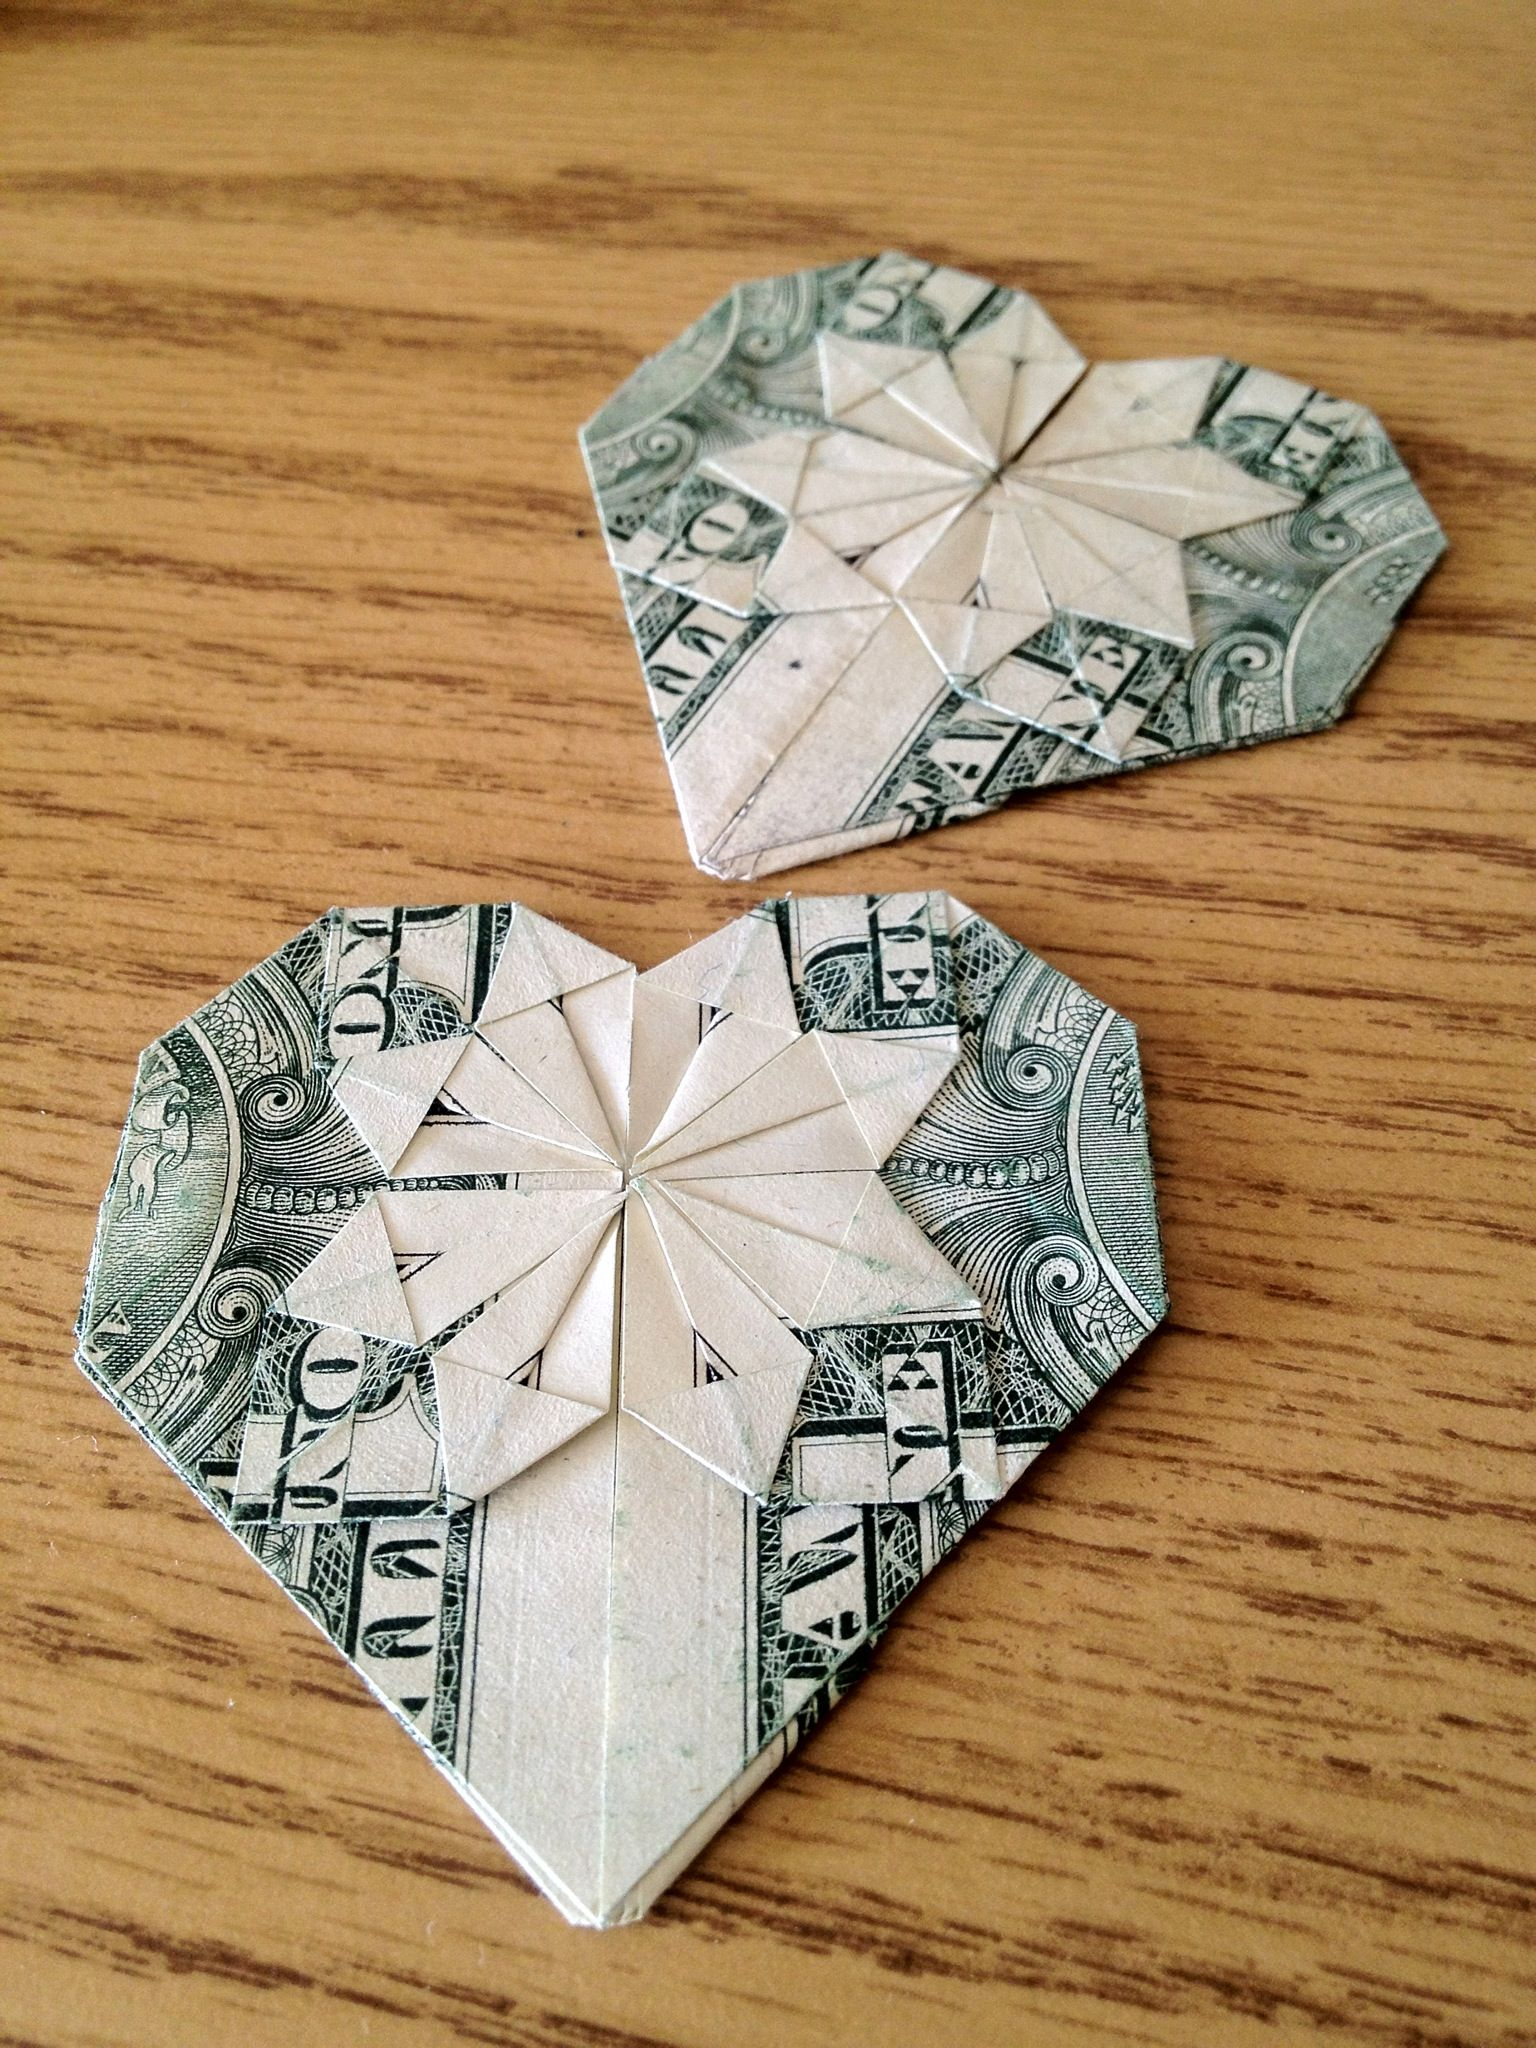 Geldscheine Falten Kreuz How To Make An Origami Heart From A Dollar Recipe